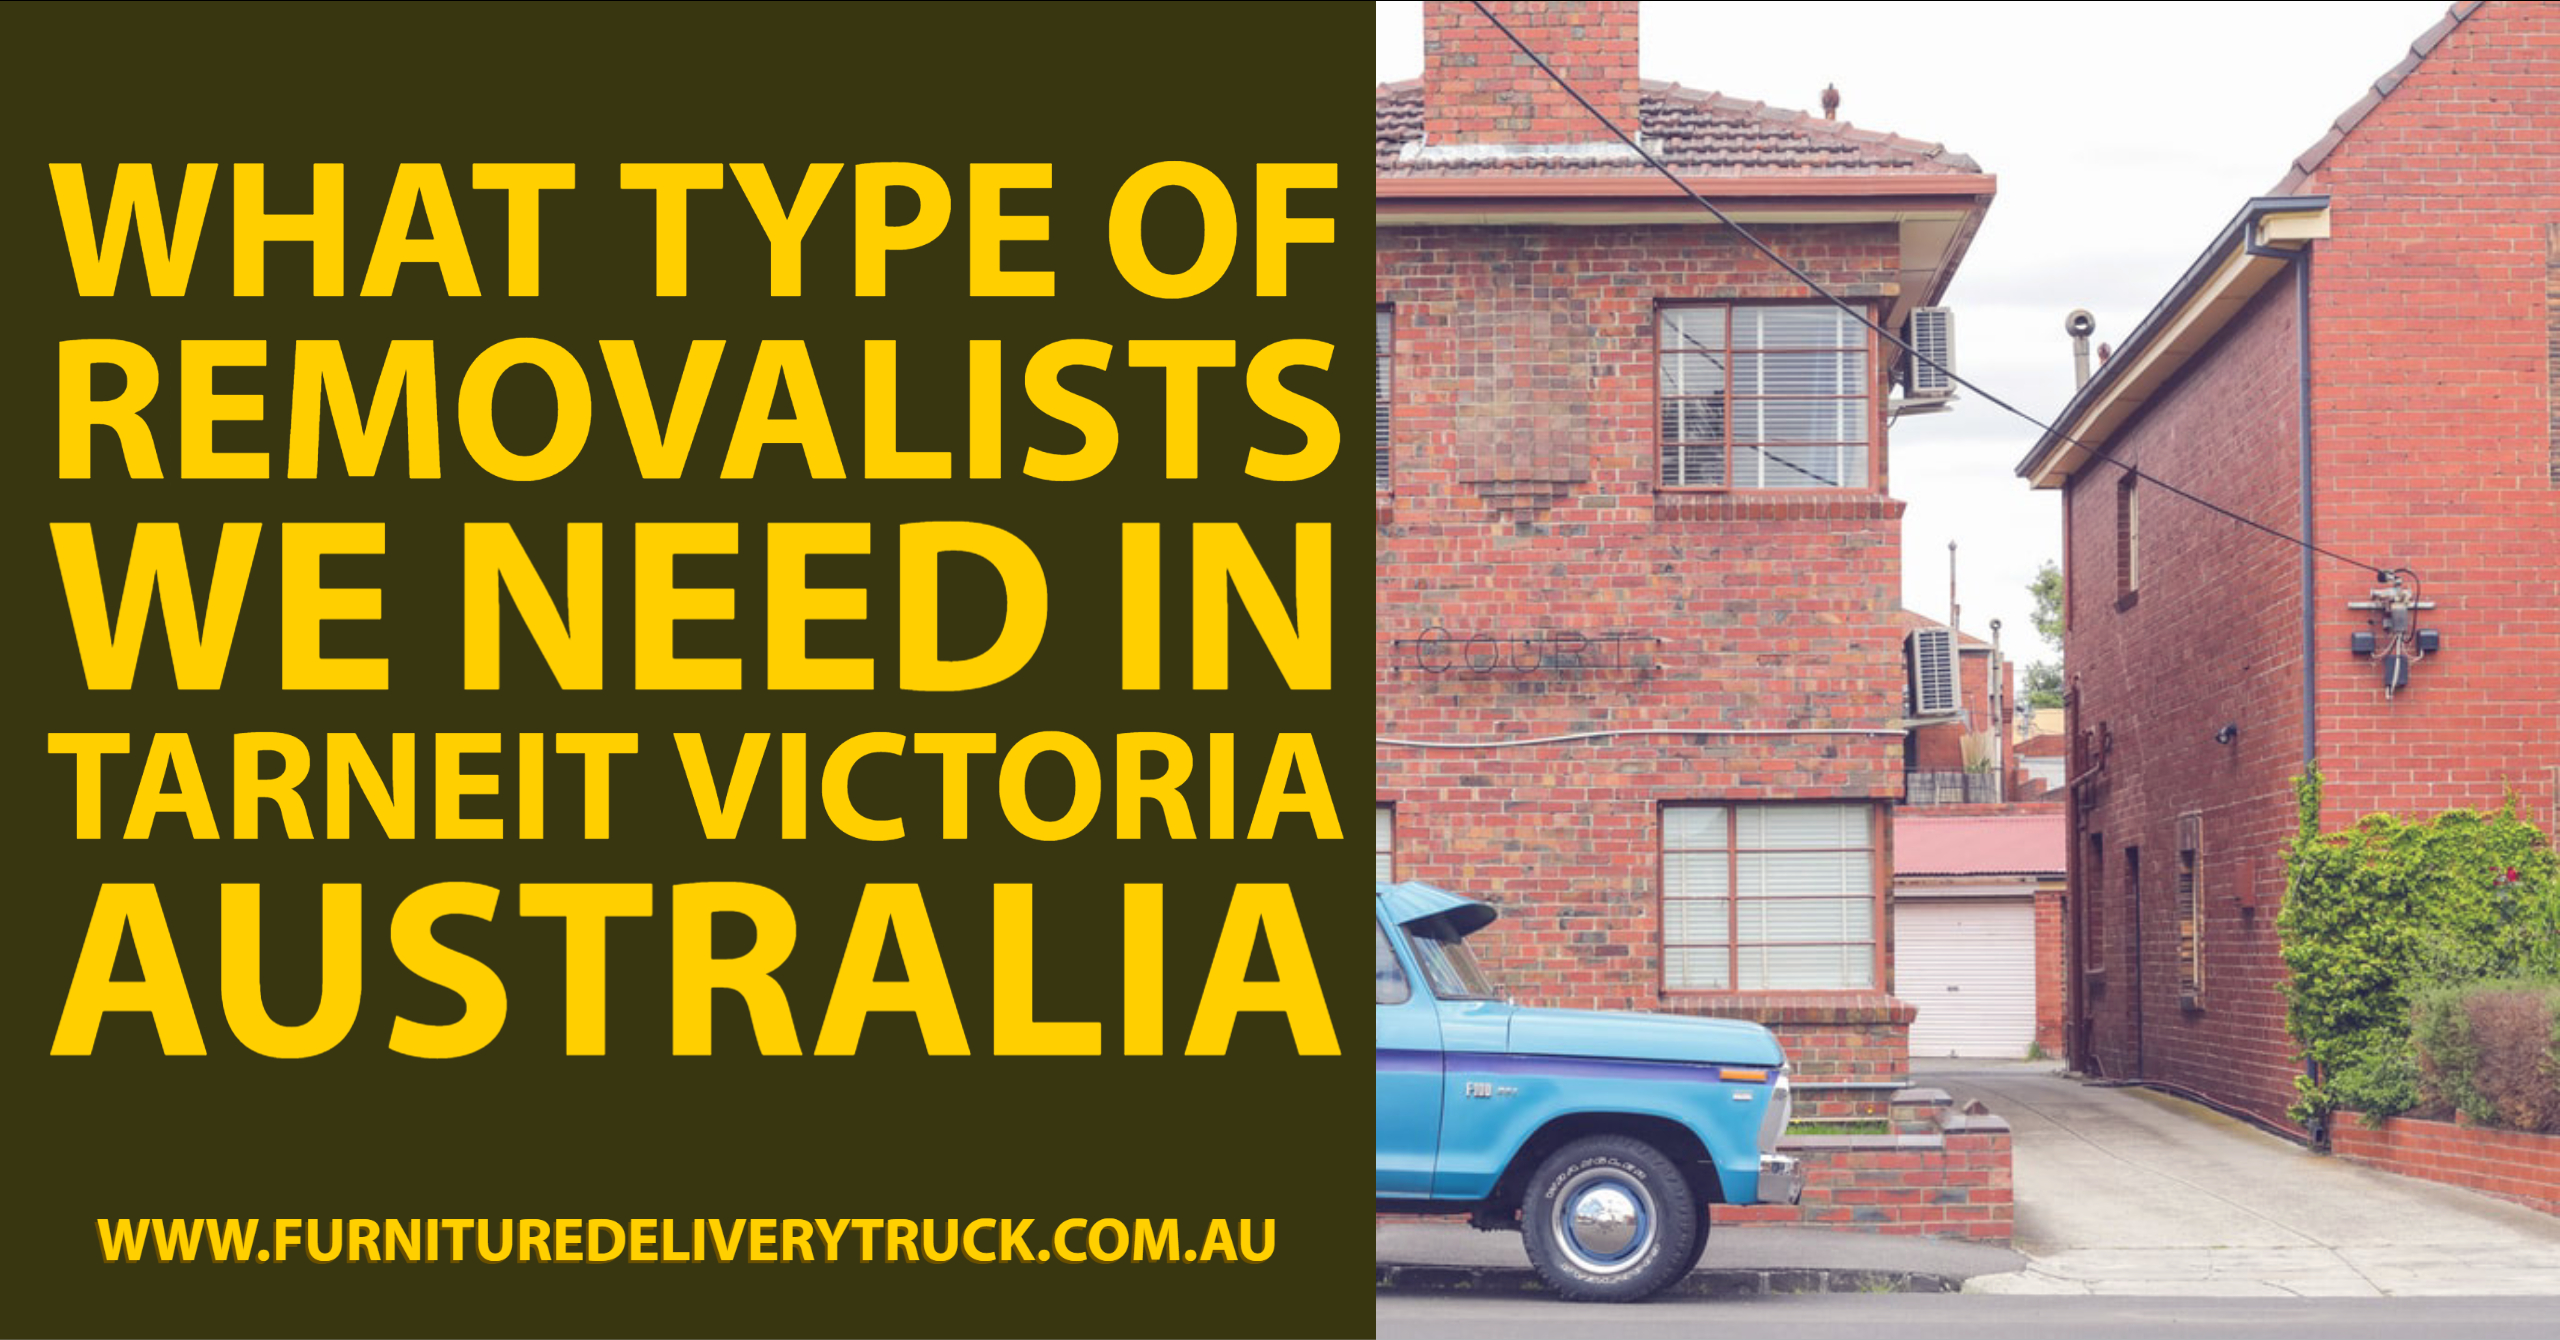 What Type of Removalists We Need in Tarneit Victoria Australia